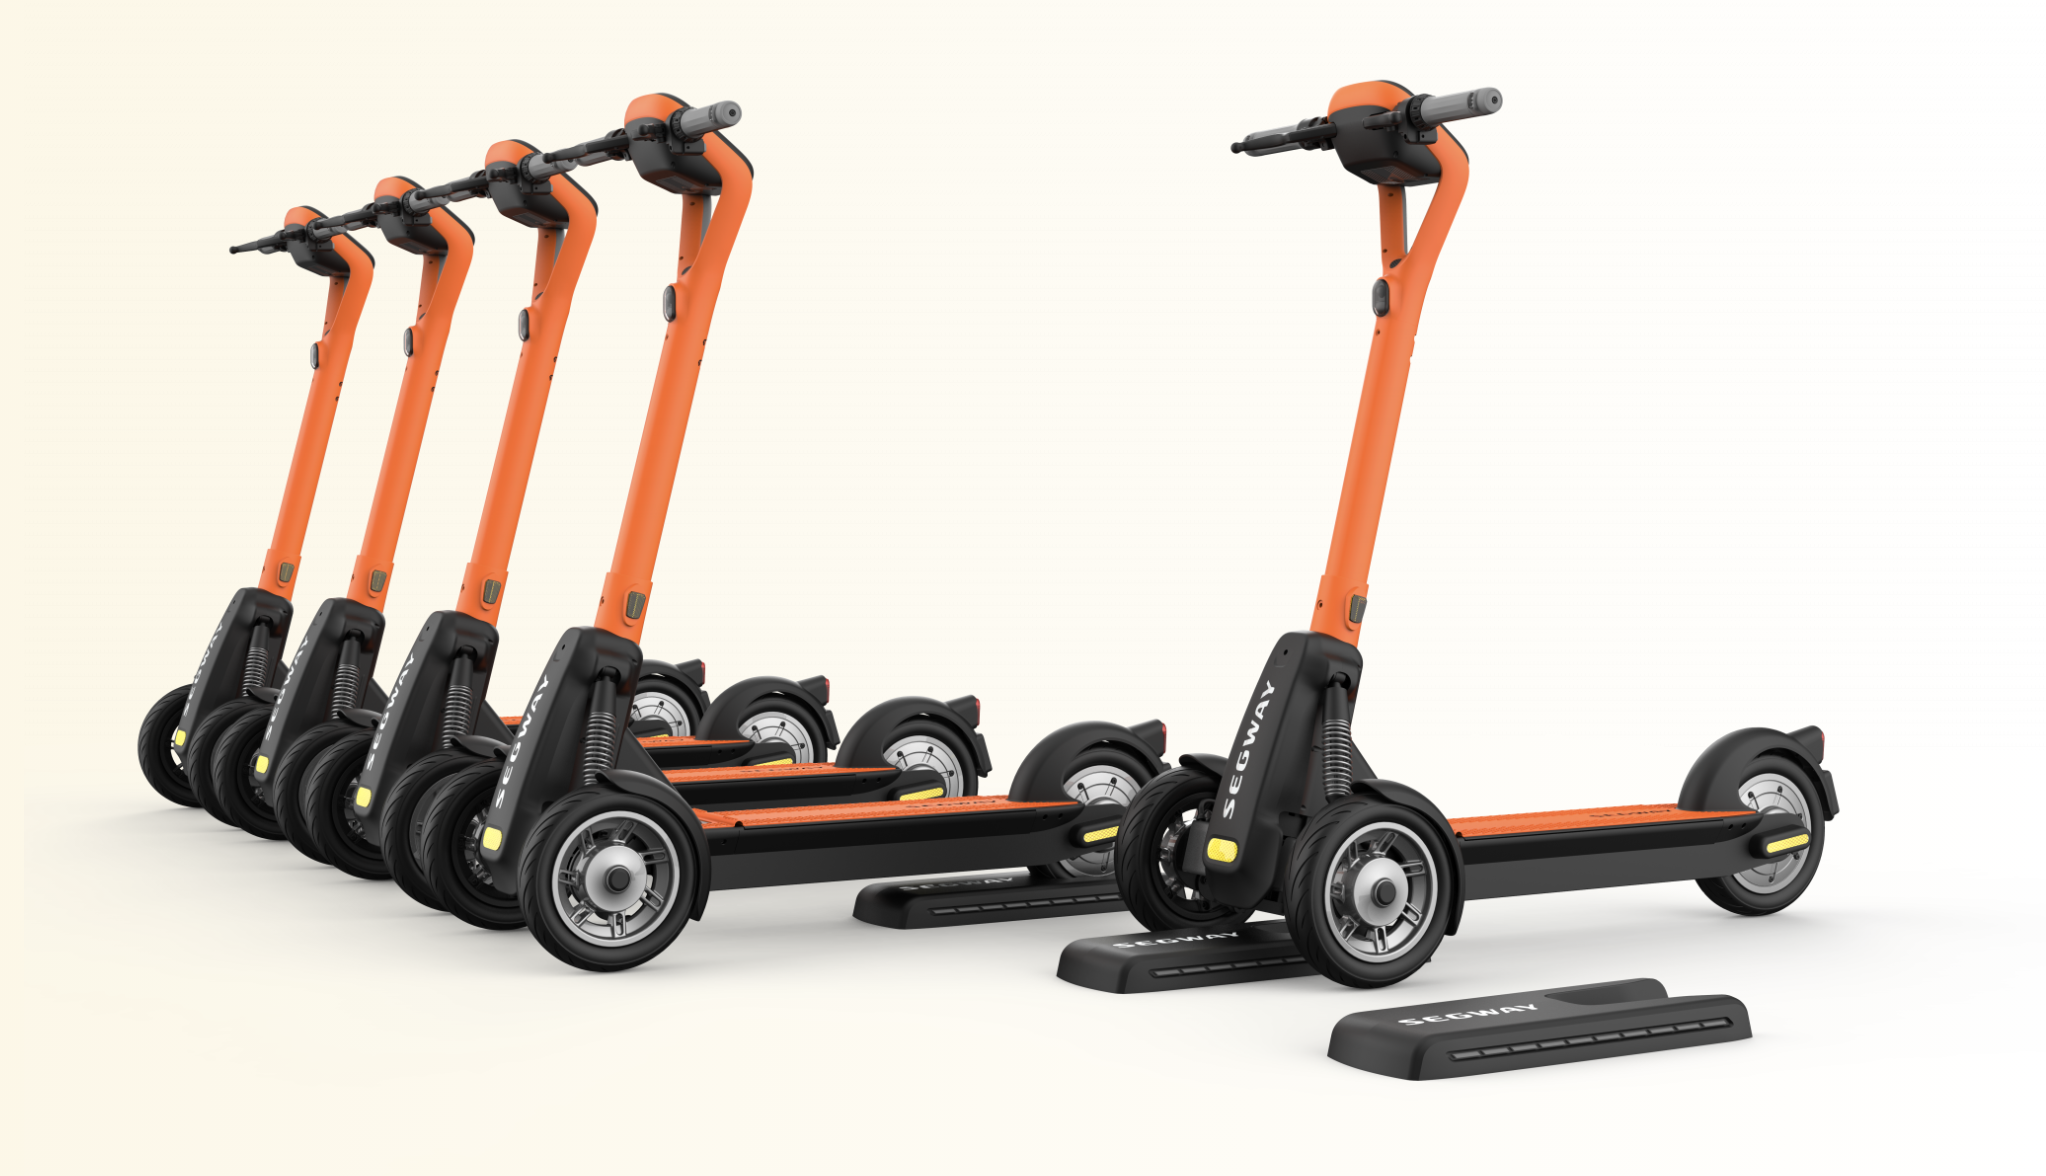 Segway Commercial Brings Full Line of Shared Vehicles to MMA 2021